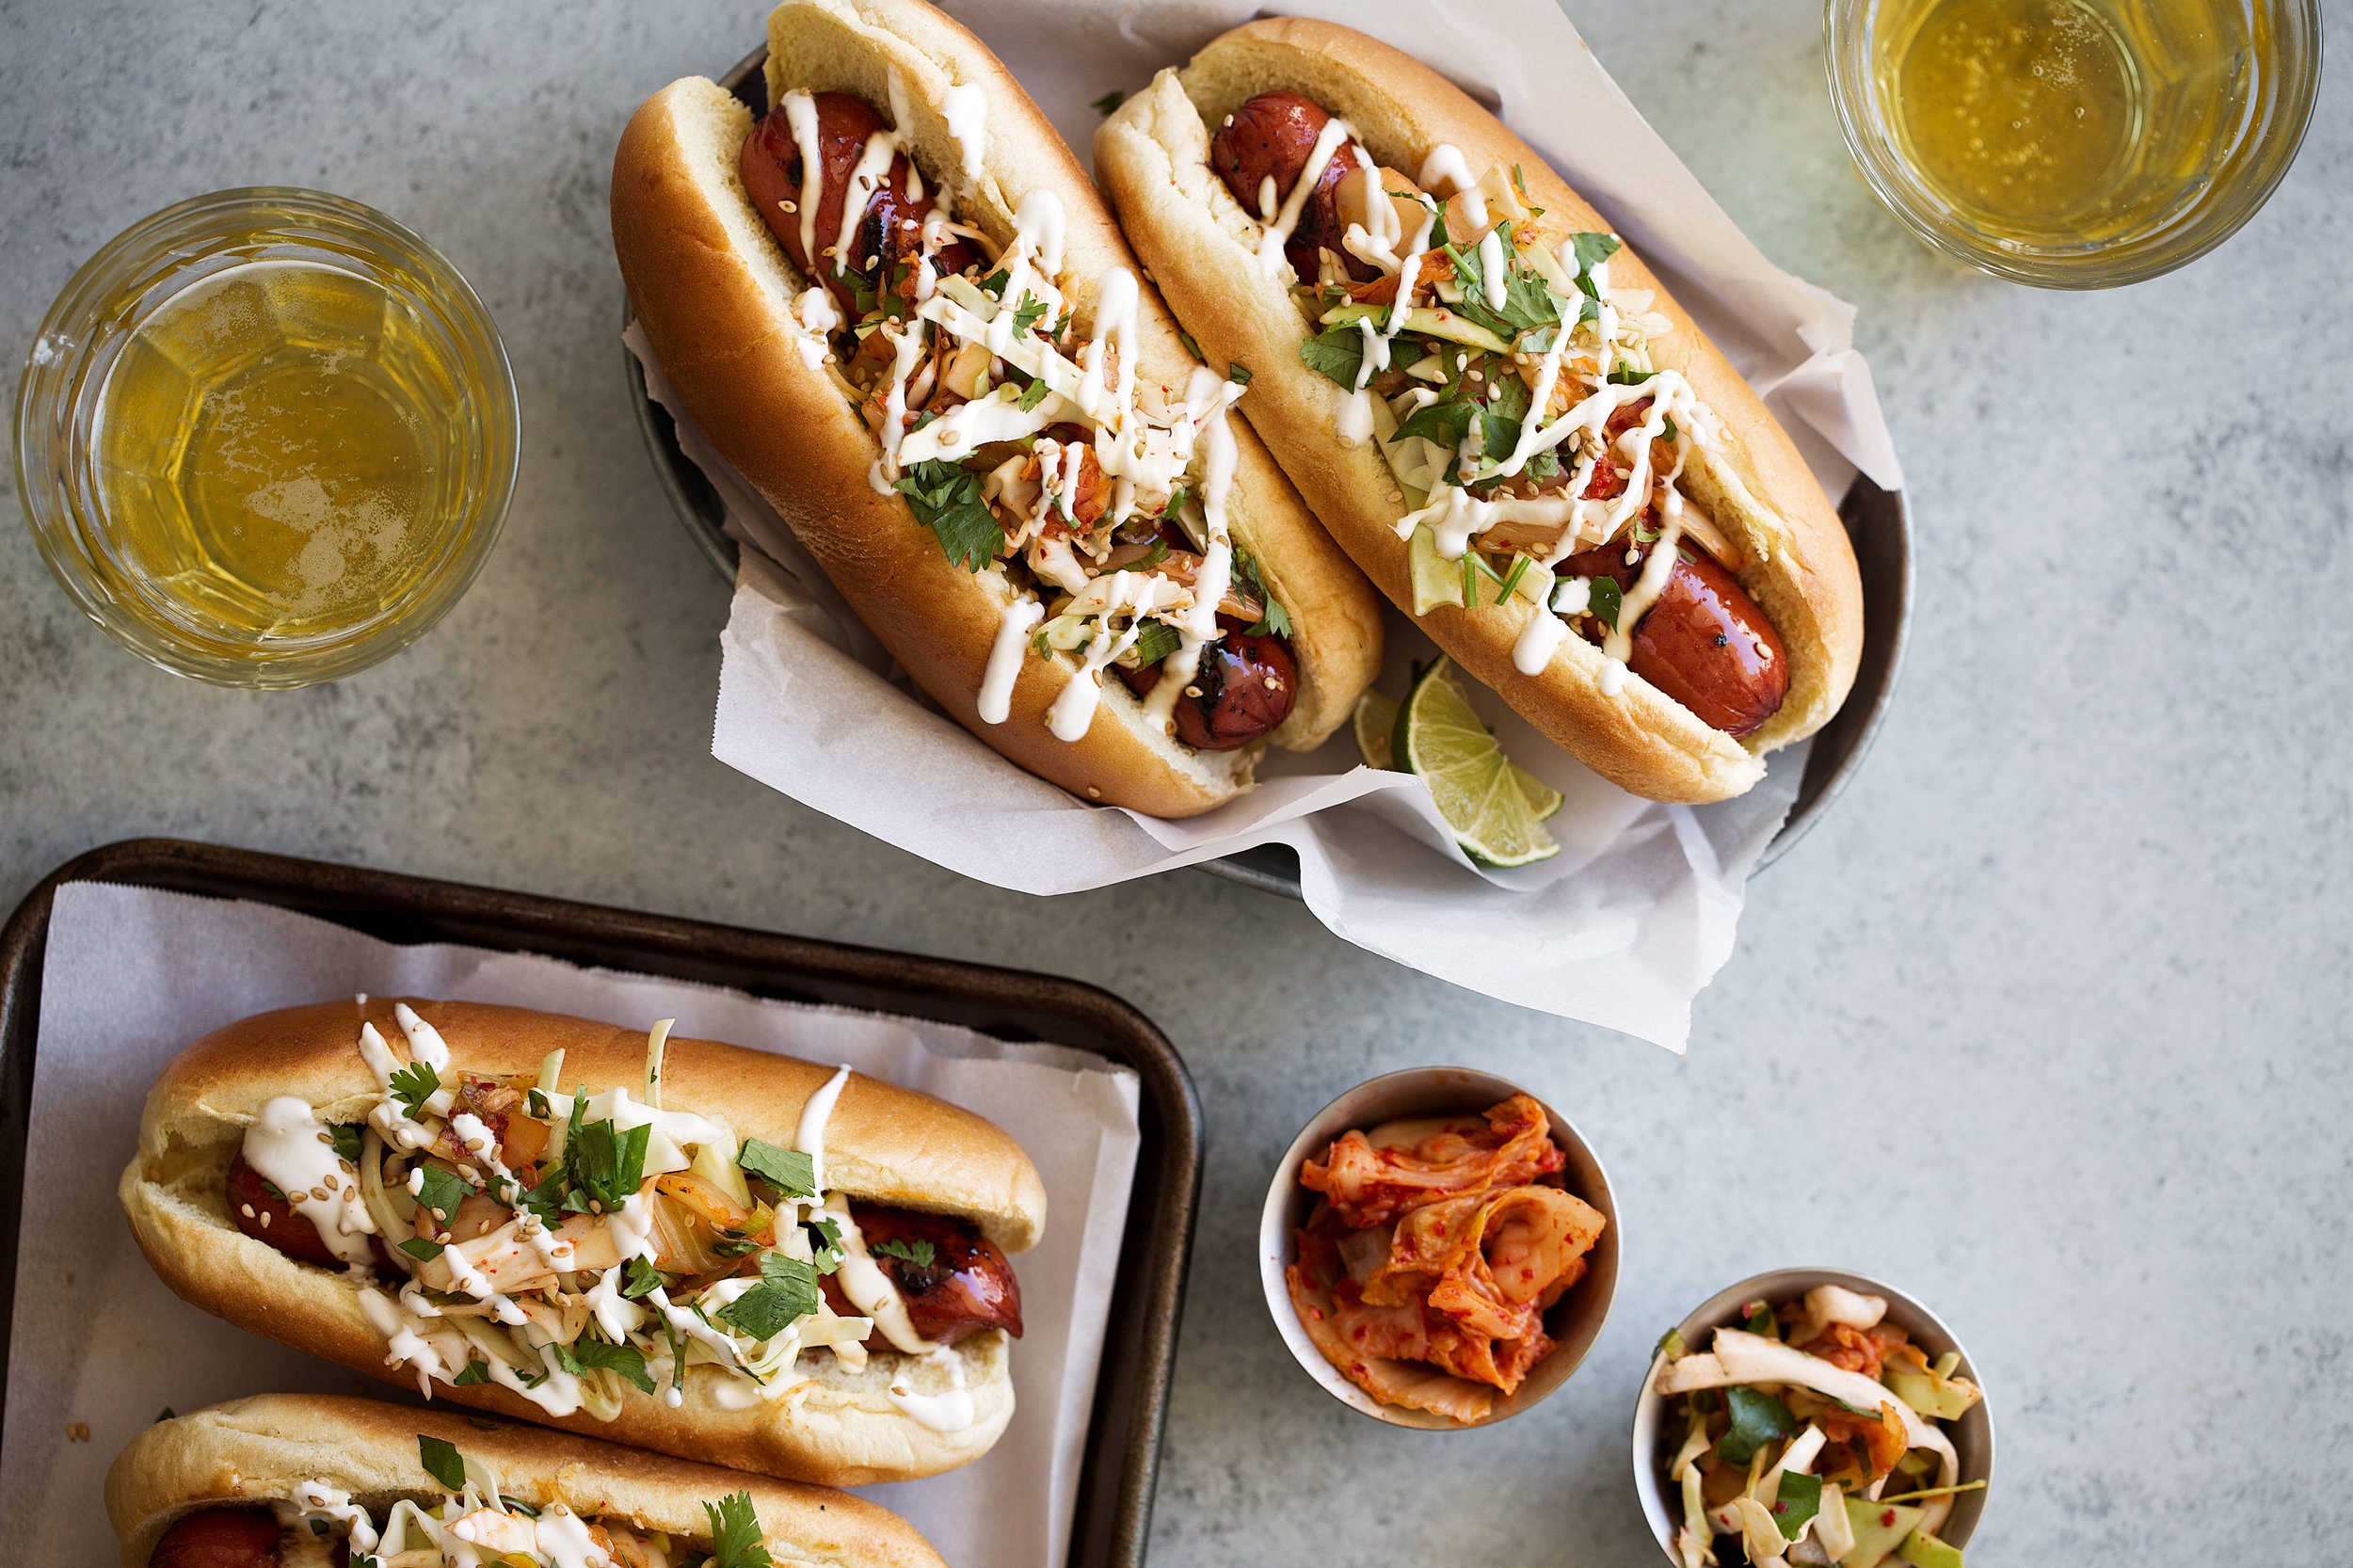 Courtesy of  Kylie Mazon-Chambers